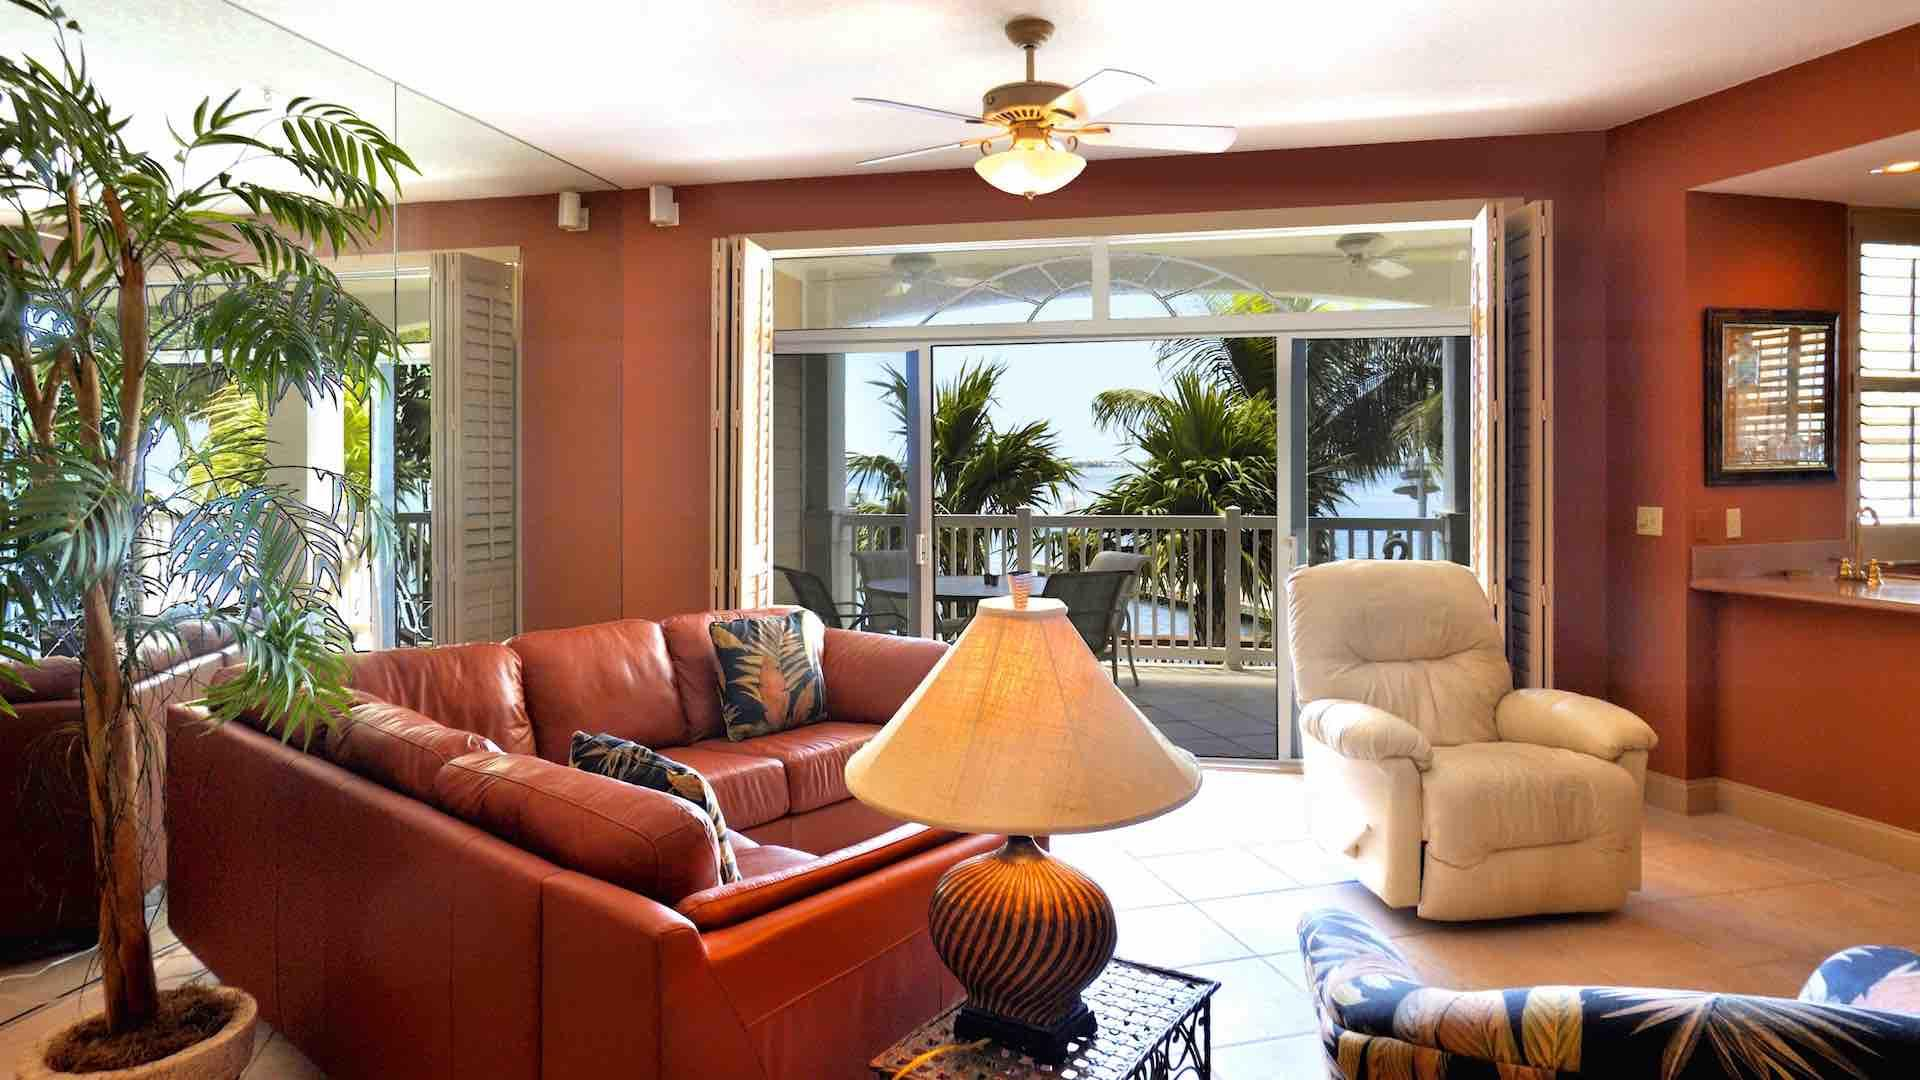 Sunset Point is a waterfront condo located at Sunset Marina...